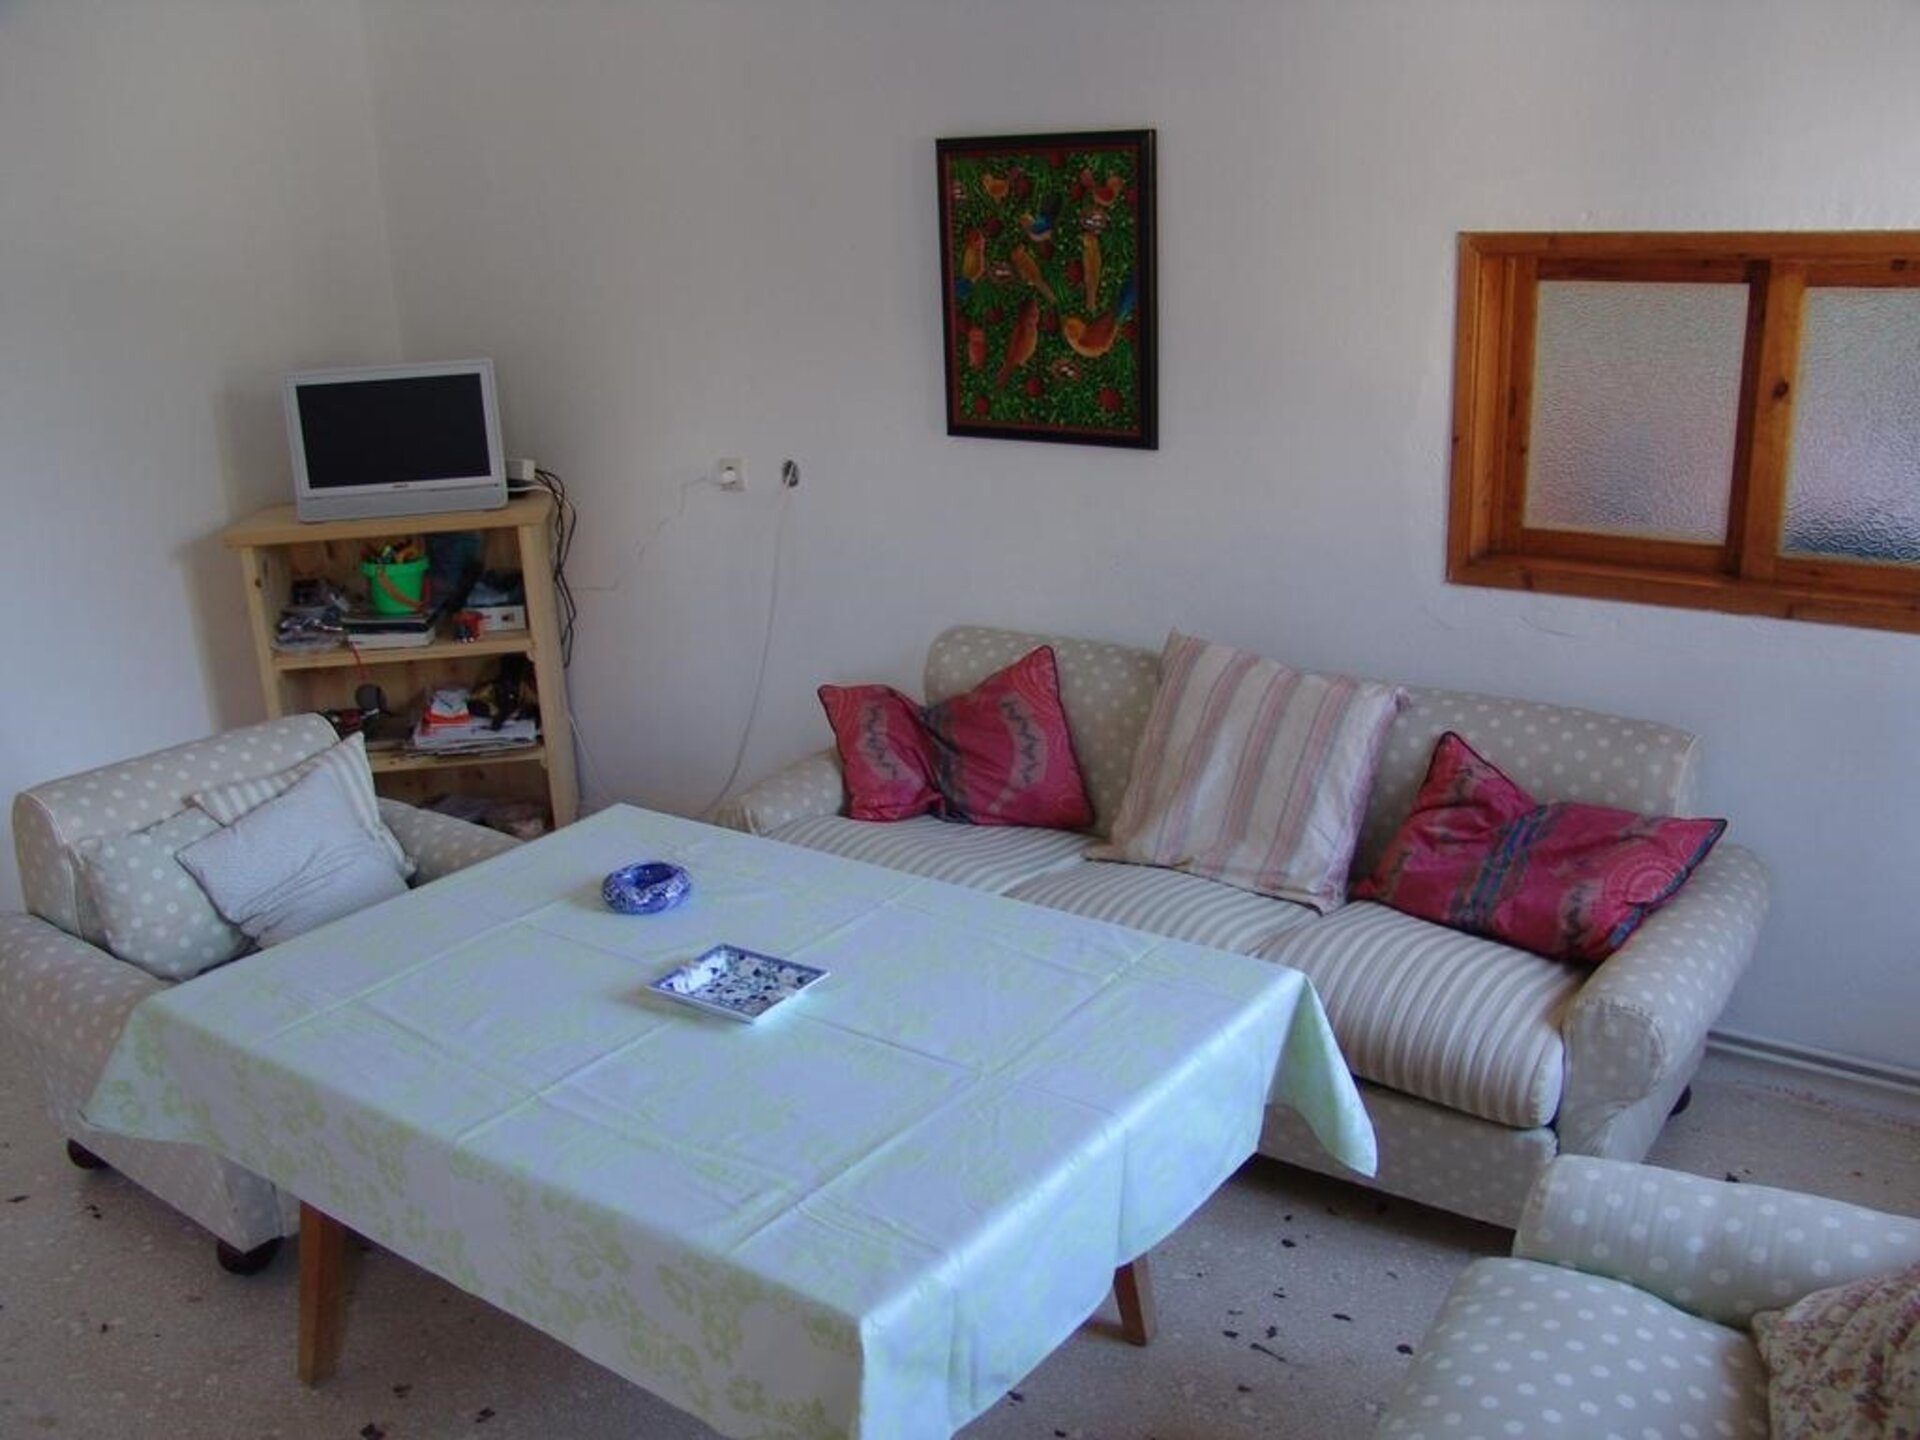 2 bedroom Detached house  in Skala Prinou  RE0688